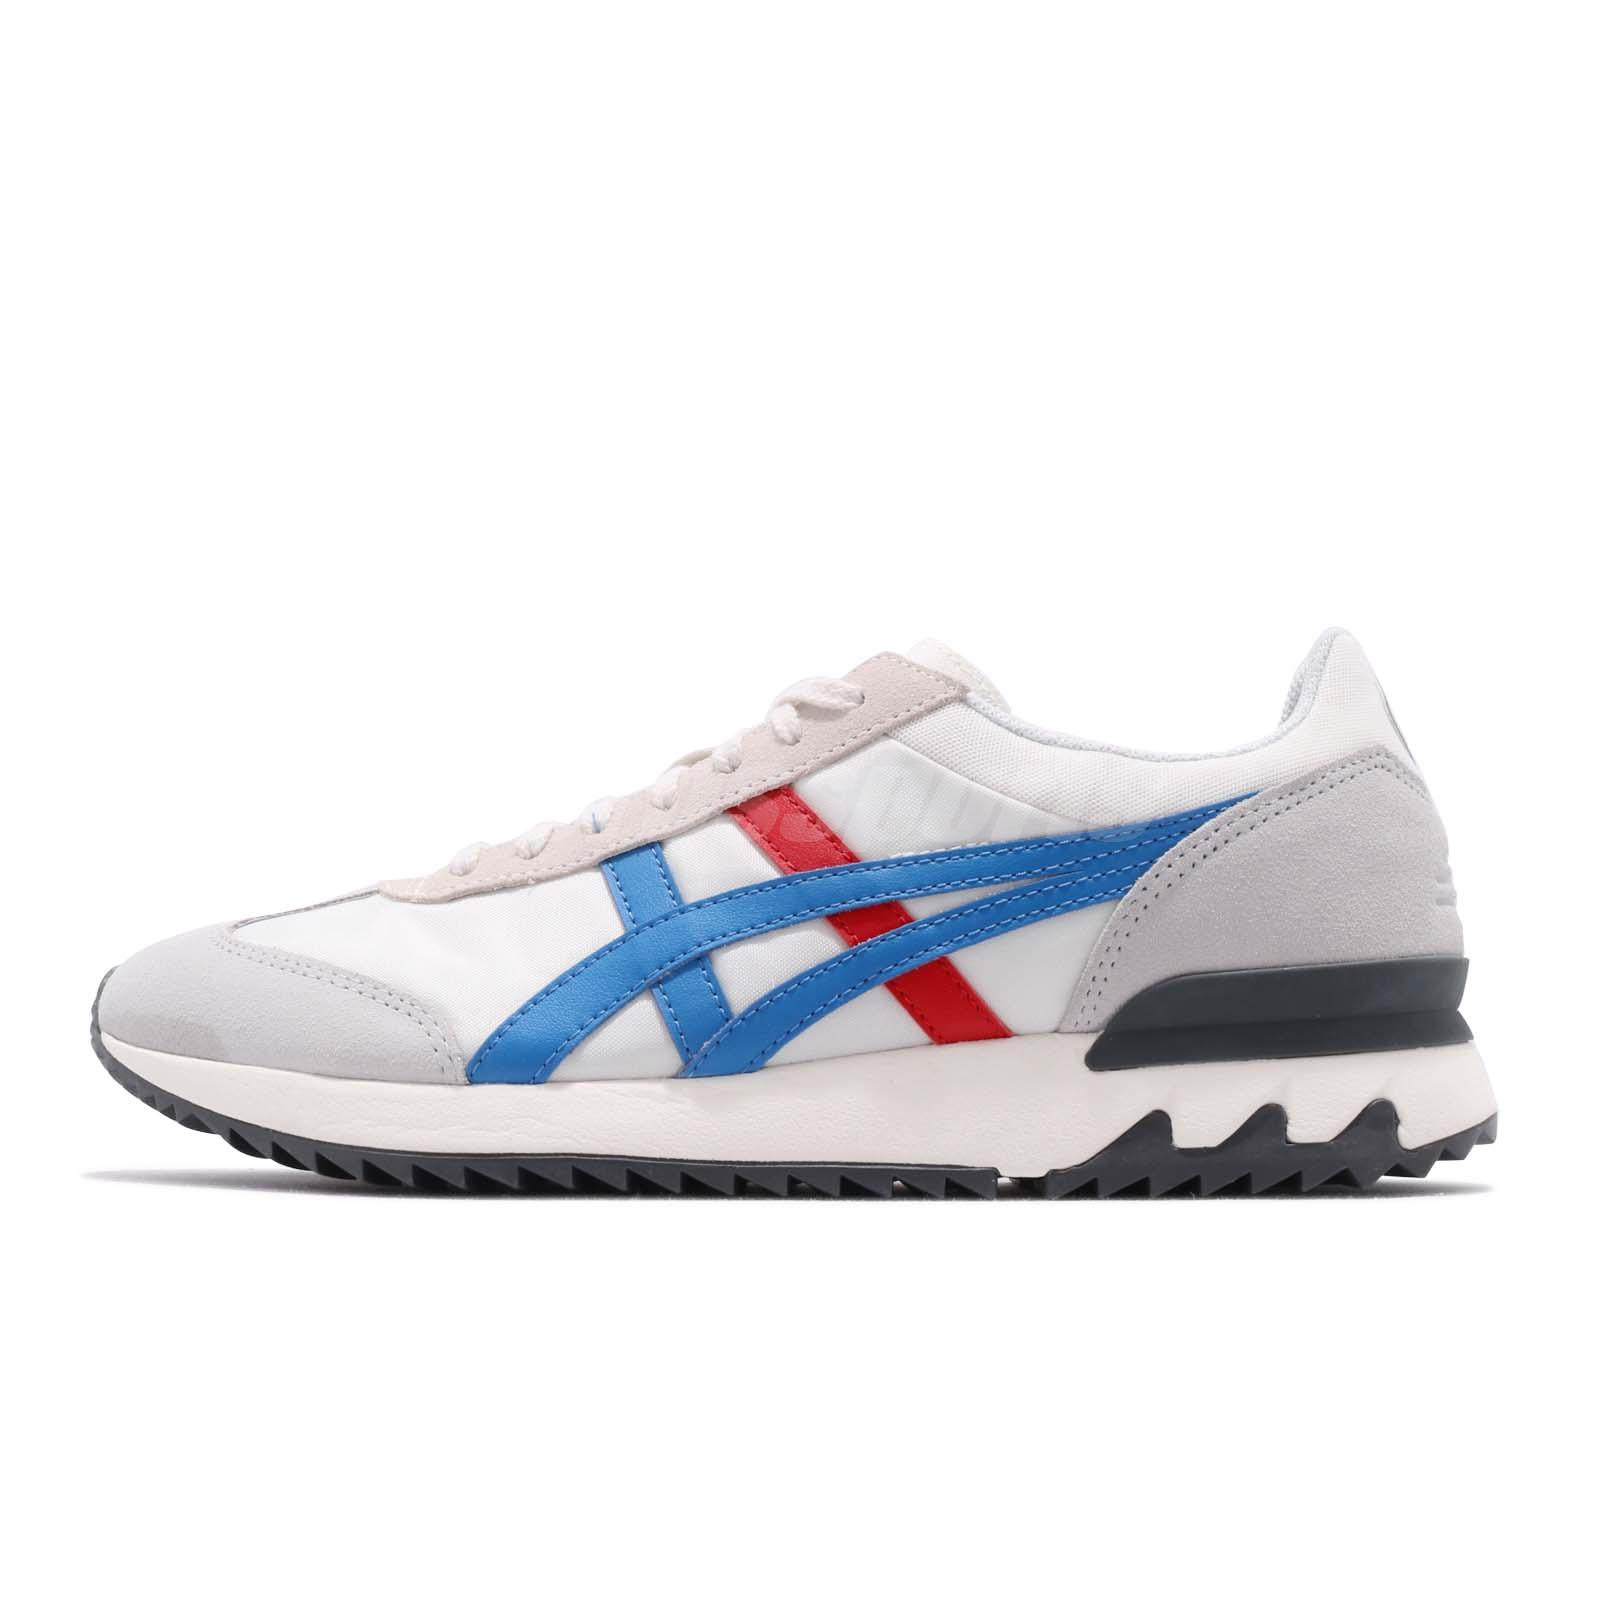 1bc6a48b3bff2 Asics Onitsuka Tiger California 78 EX Cream Blue Red Men Shoes 1183A194-100